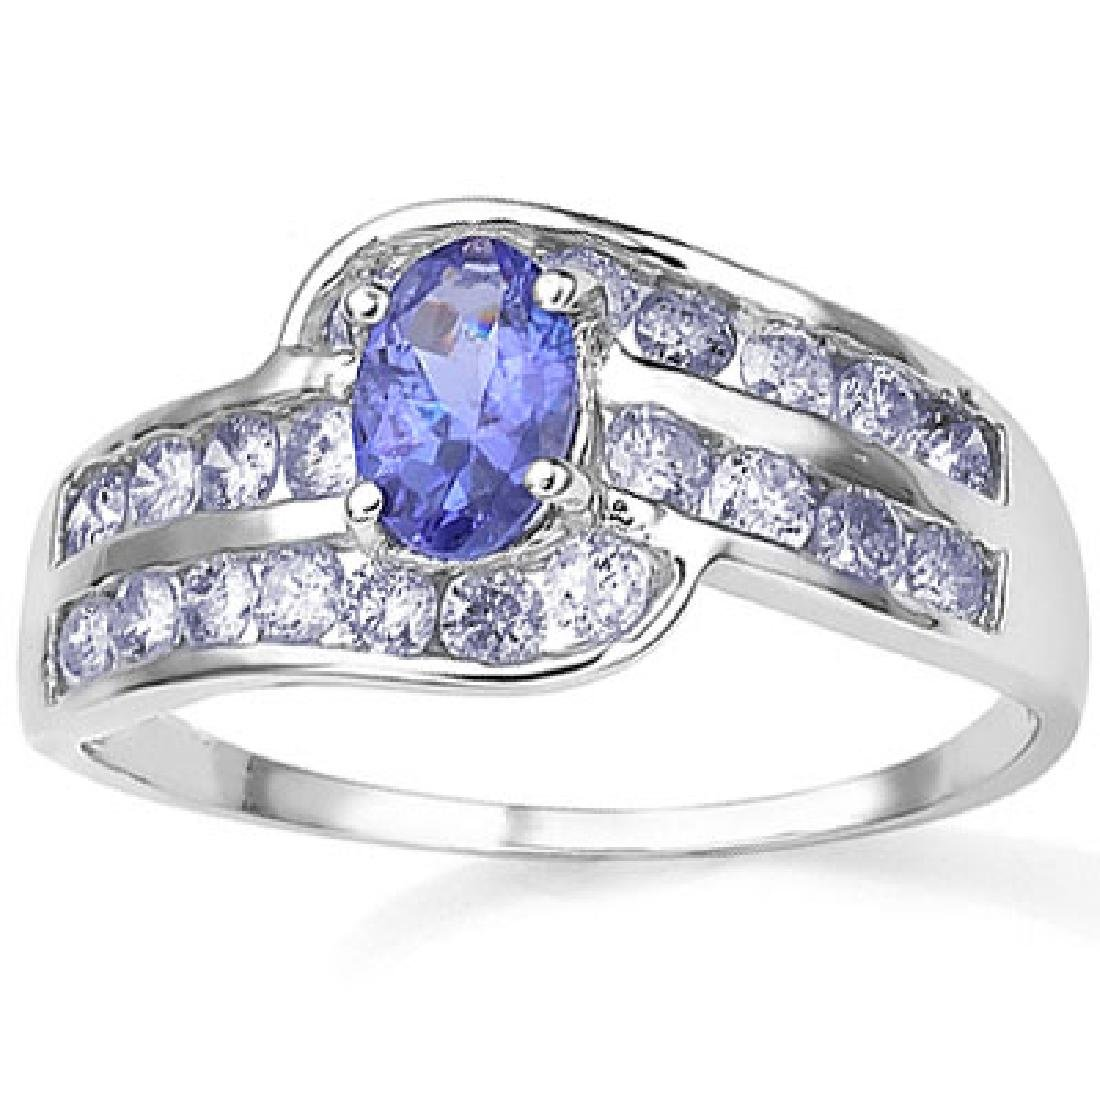 BEAUTIFUL MULTI TANZANITE ELITE STERLING RING